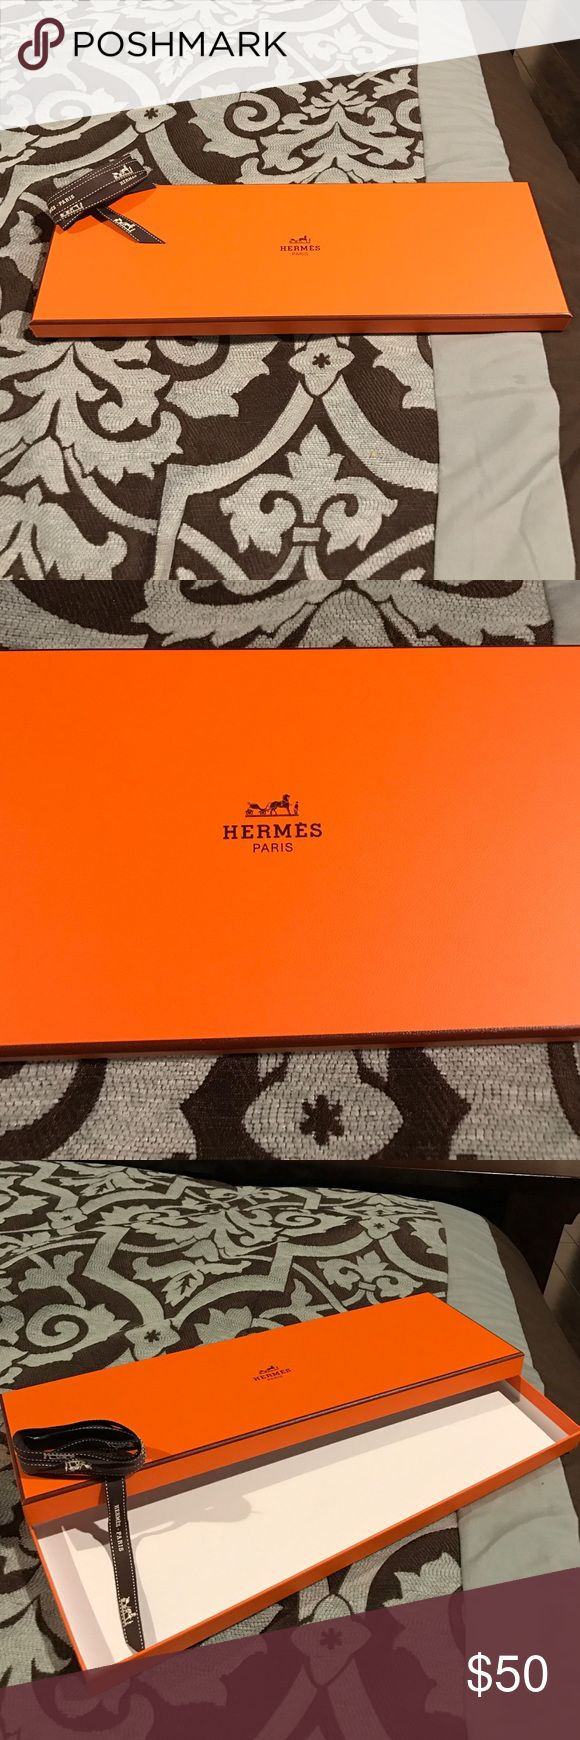 Hermes tie box with shopping bag and ribbon. Hermes iconic orange tie box with ribbon and  shopping bag. Pristine condition Hermes Other